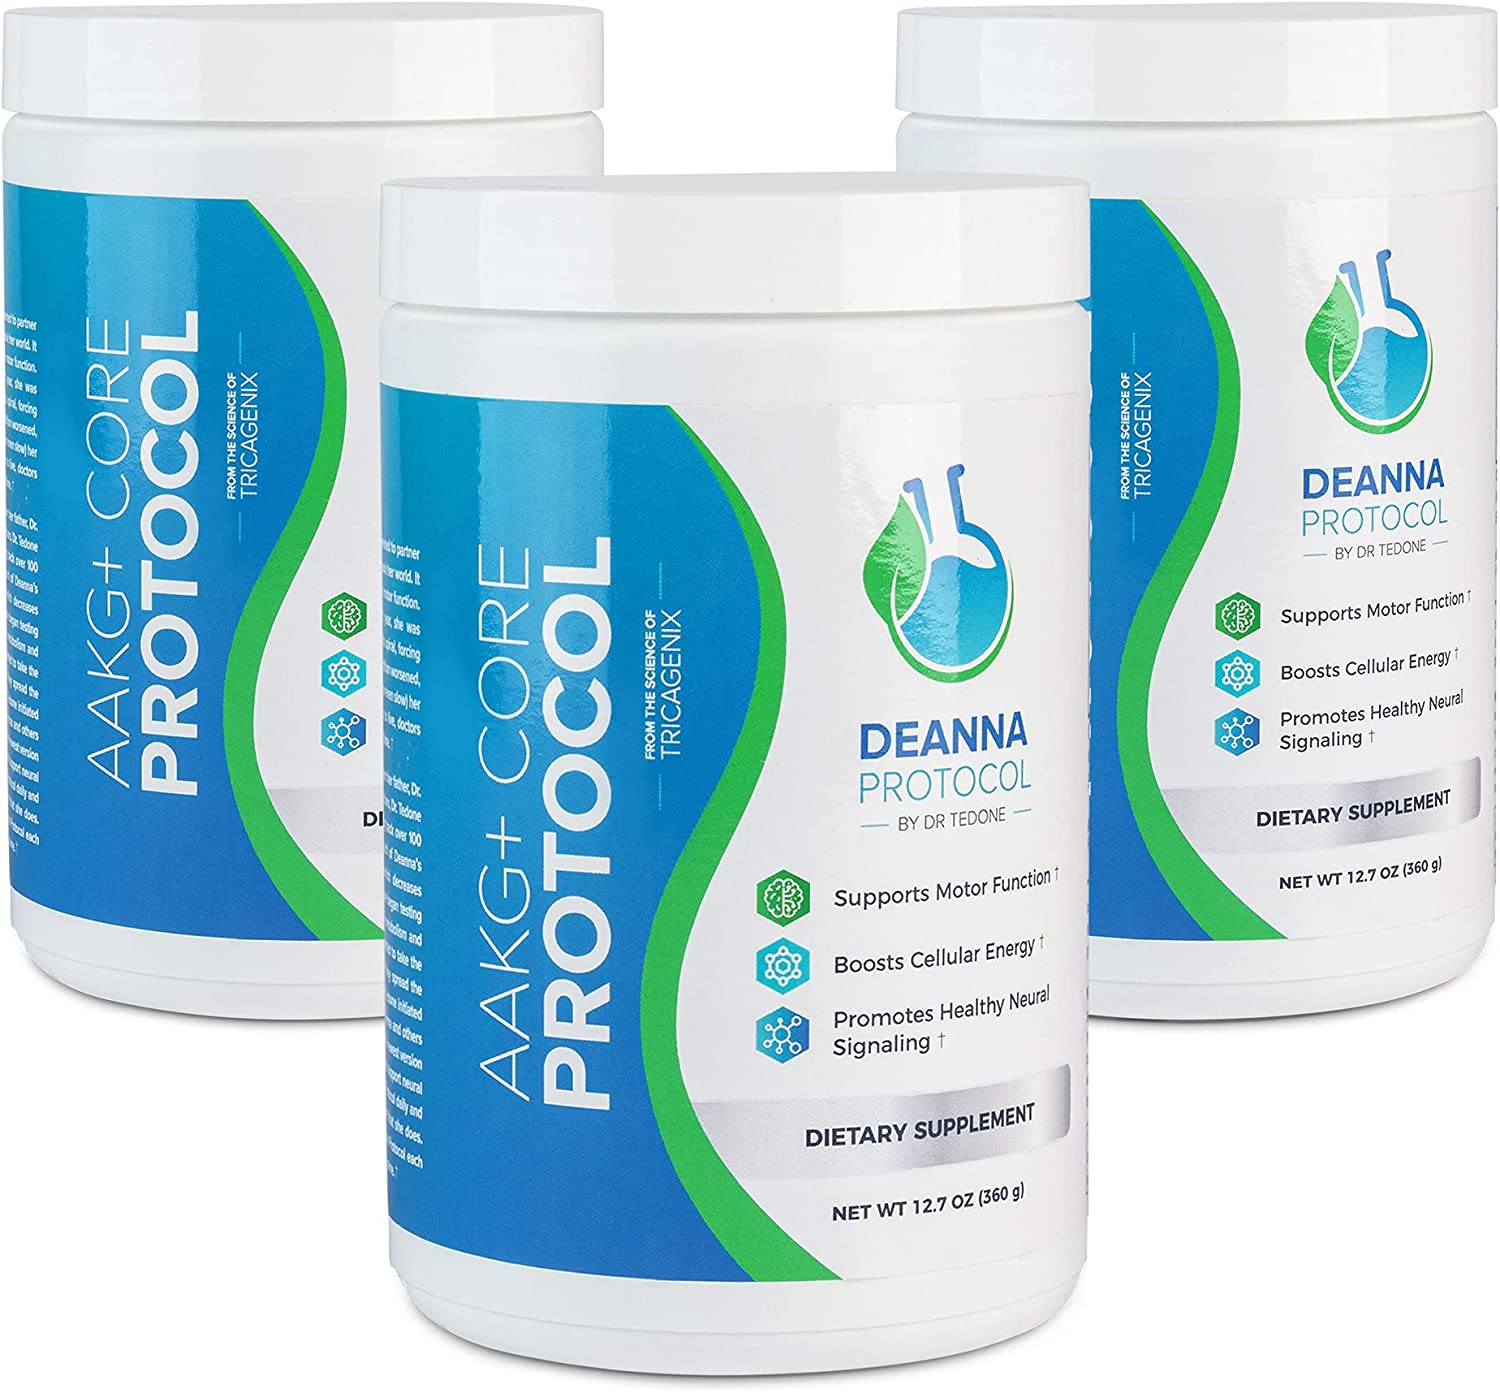 Deanna Protocol - AAKG+ Core Powder 3 Inventory cleanup selling sale NEW before selling